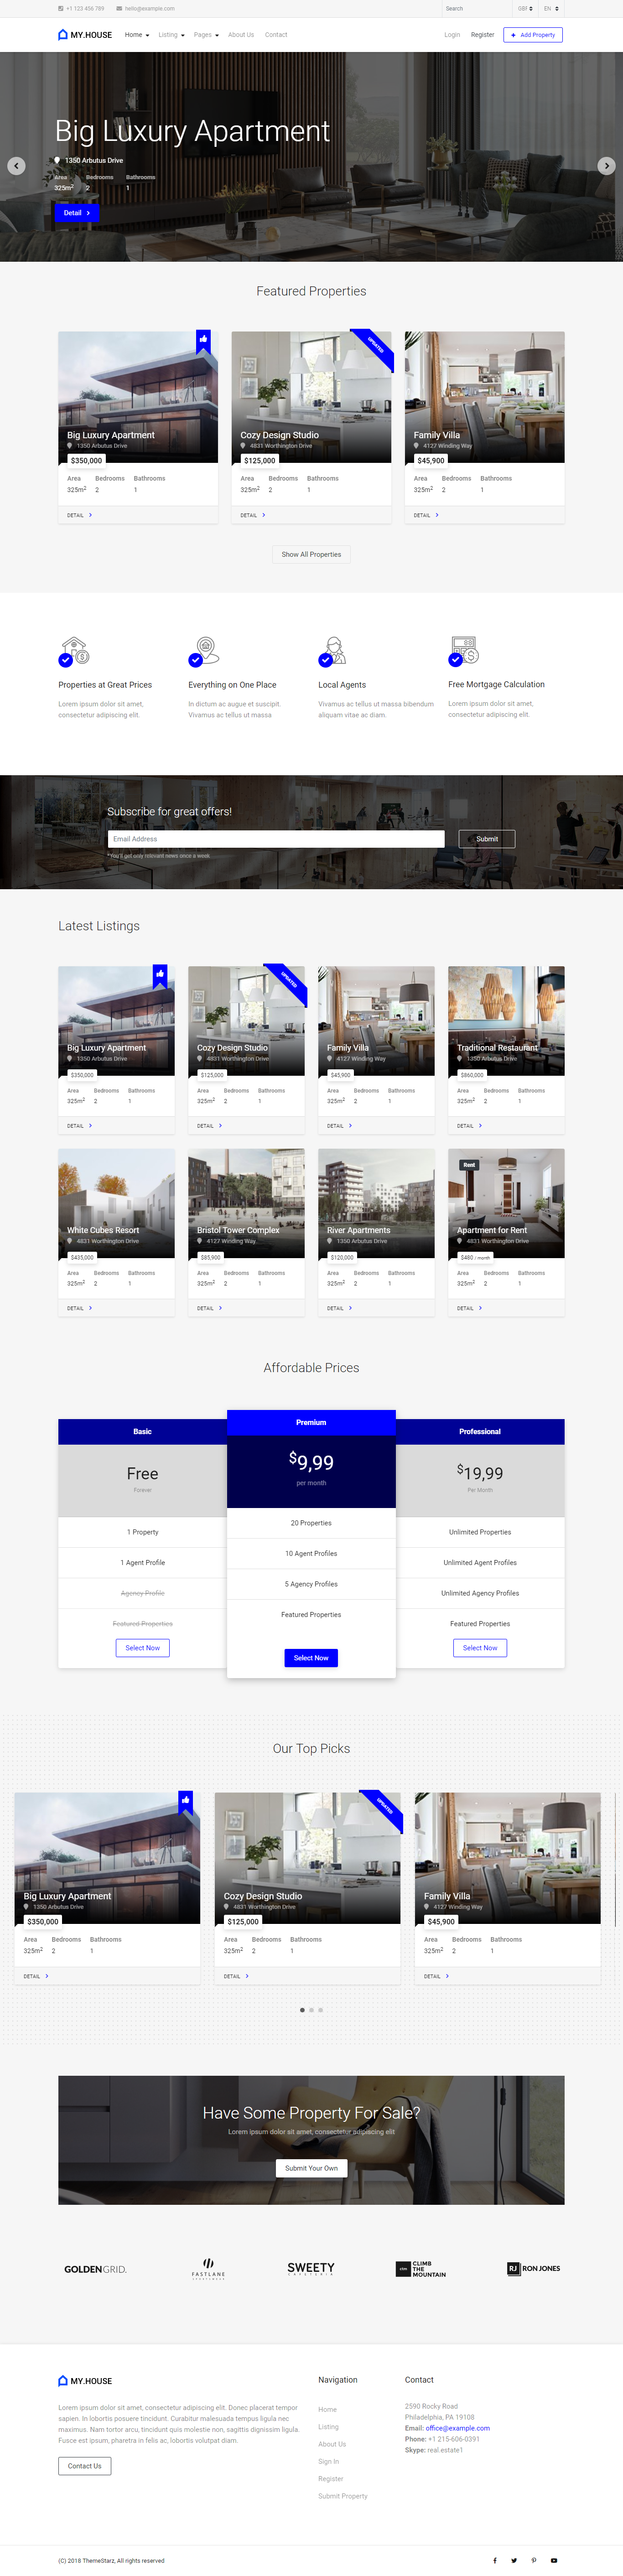 My House – the most advanced HTML template on TF that supports not